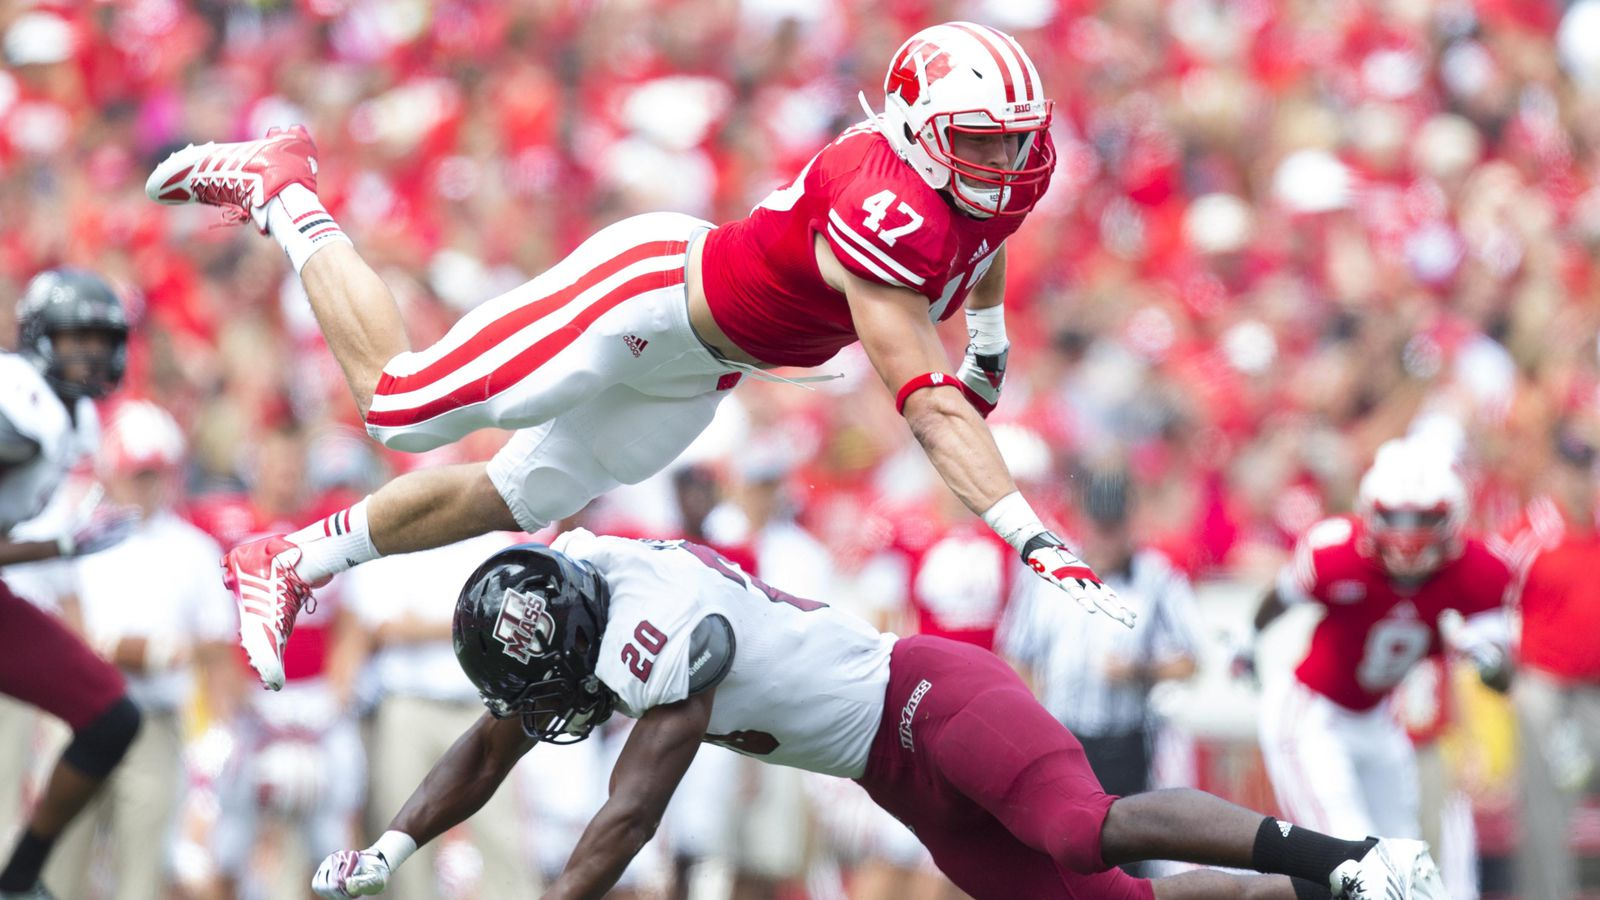 Wisconsin vs. BYU extra special for Vince Biegel - Bucky's ...